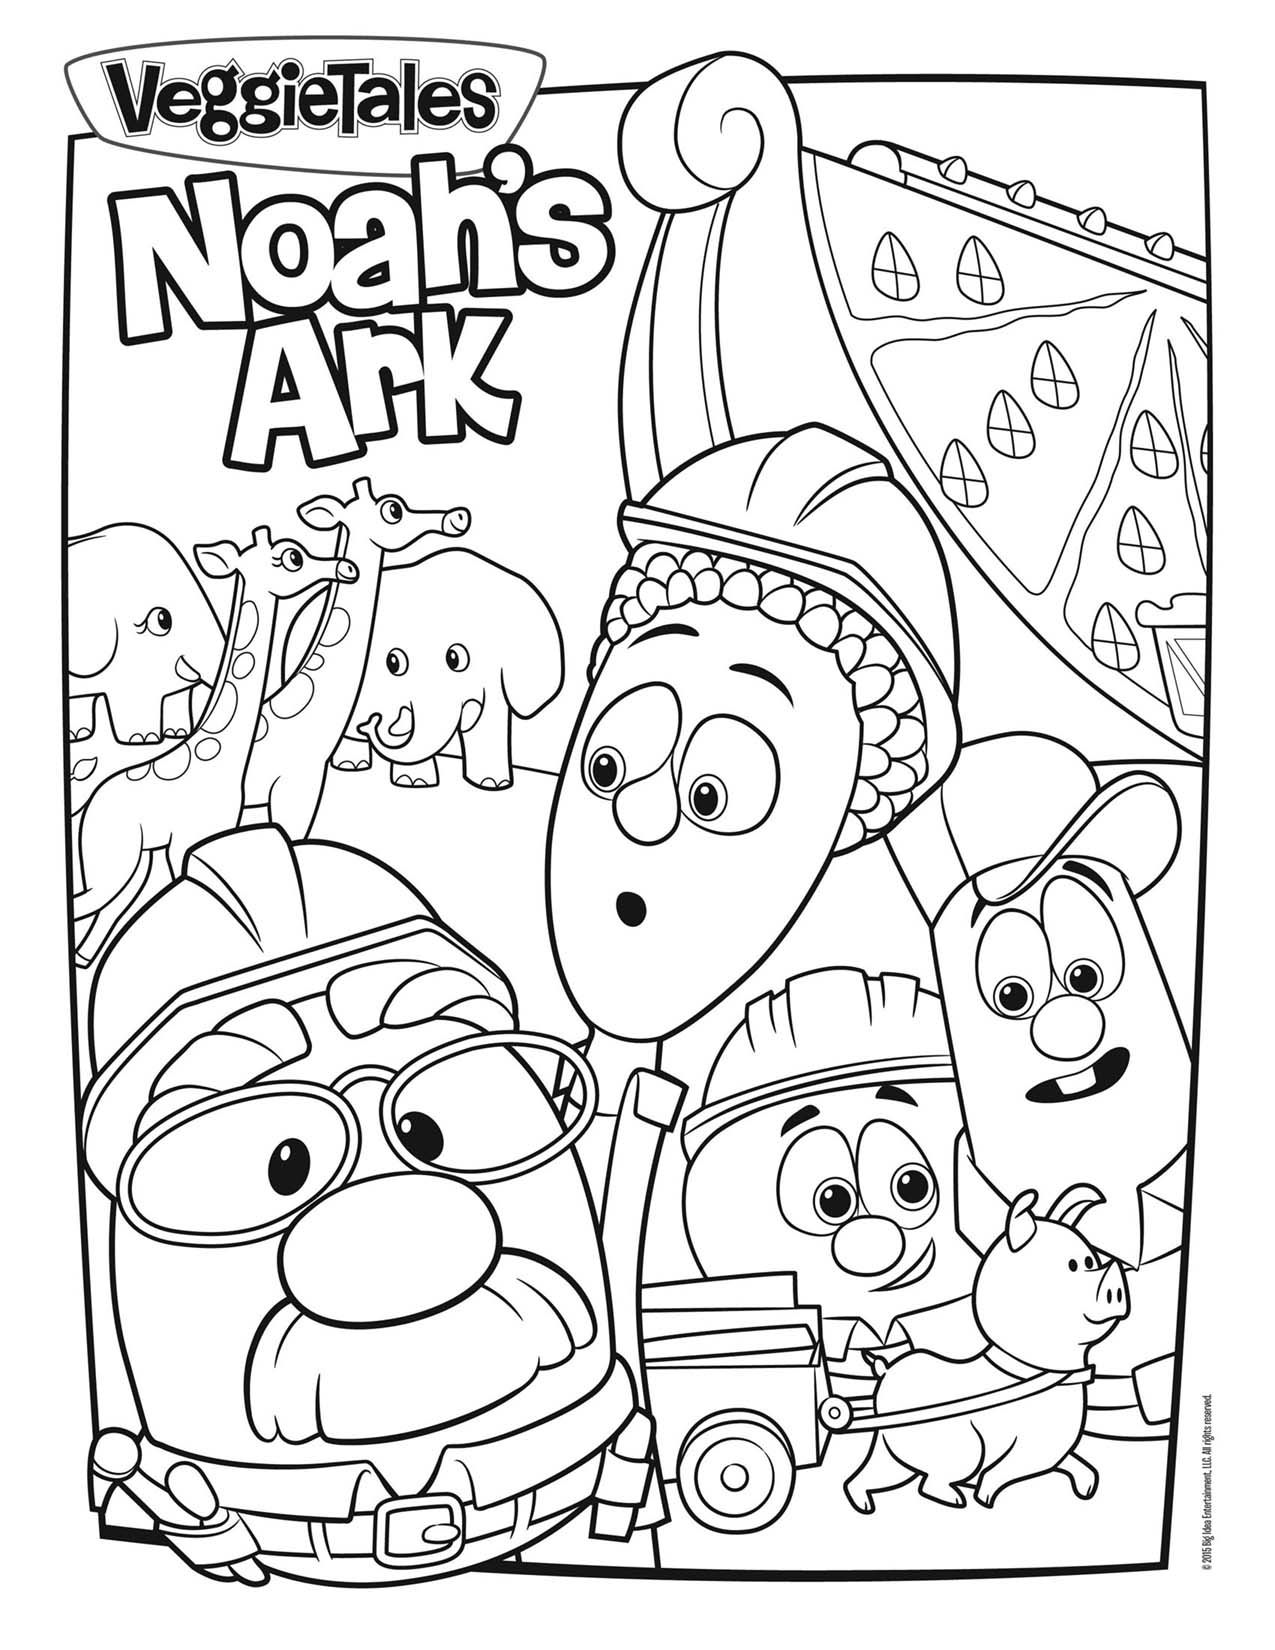 Noah S Ark Coloring Page Coloring Pages Toddler Coloring Book